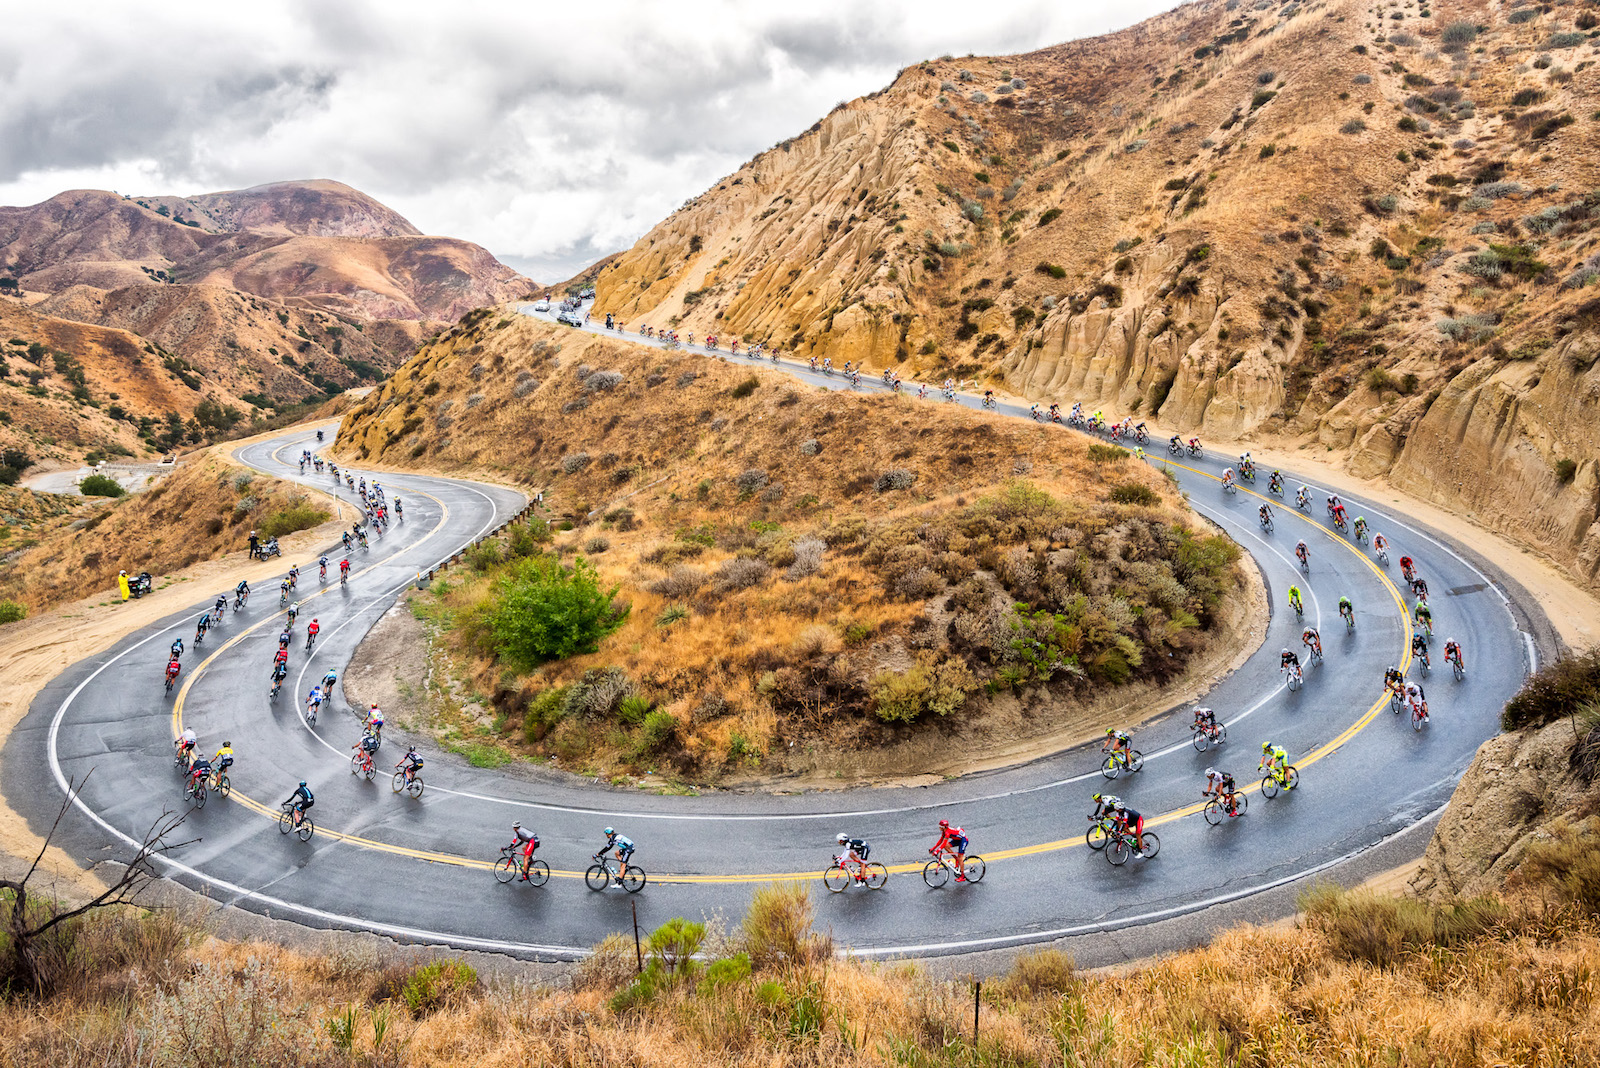 """Darrell Parks, United States. """"The Peloton navigates the sweeping turn of Grimes Canyon on Stage 5 of the 2015 AMGEN Tour of California."""" DSLR. @dparksphoto"""